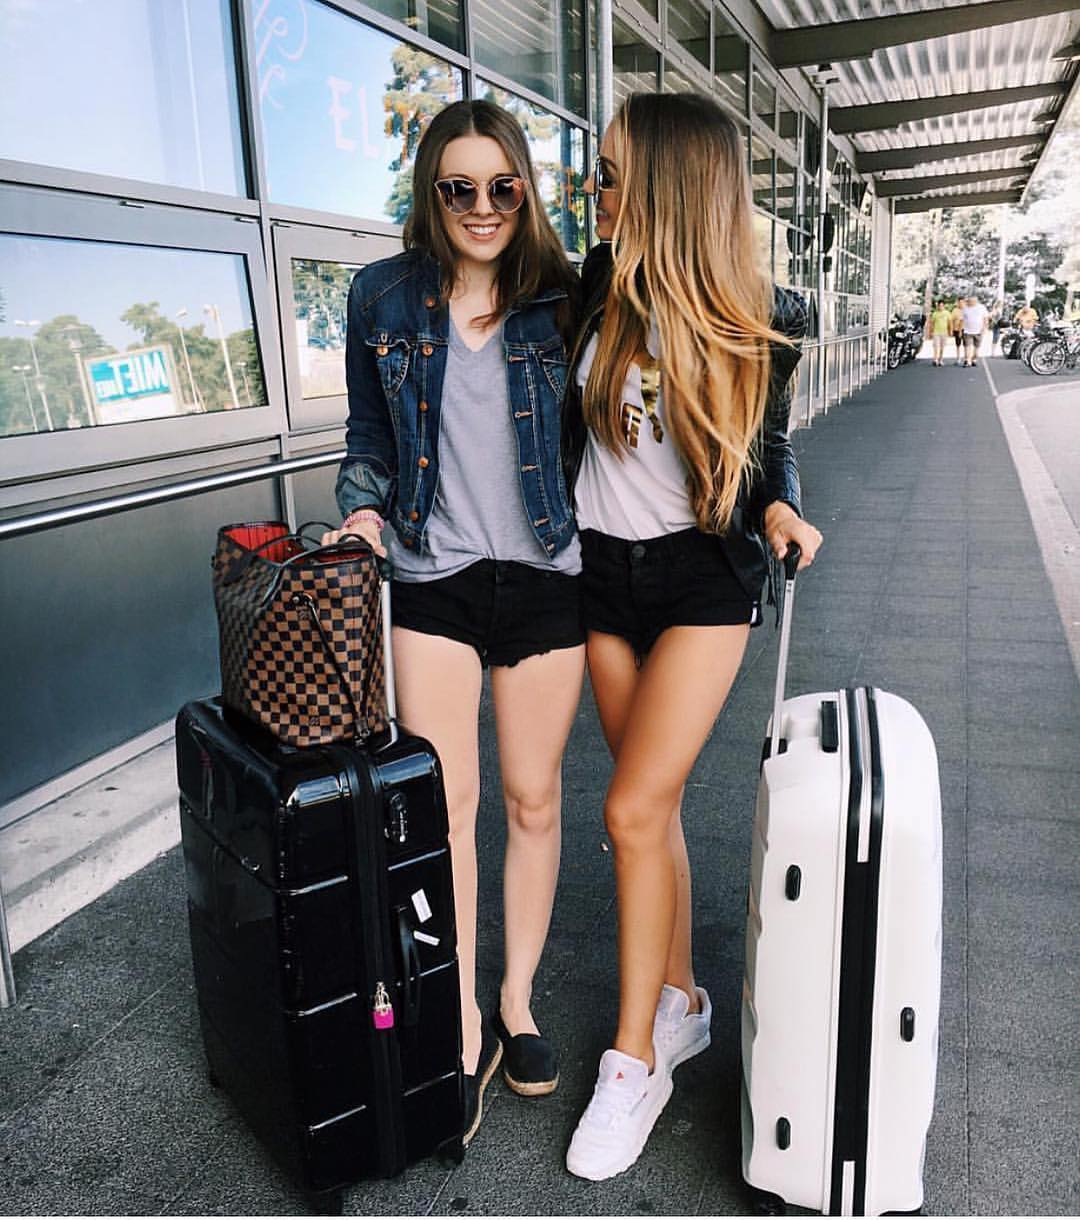 Denim jacket, T-shirt, black shorts and sneakers: airport outfit idea for summer 2021